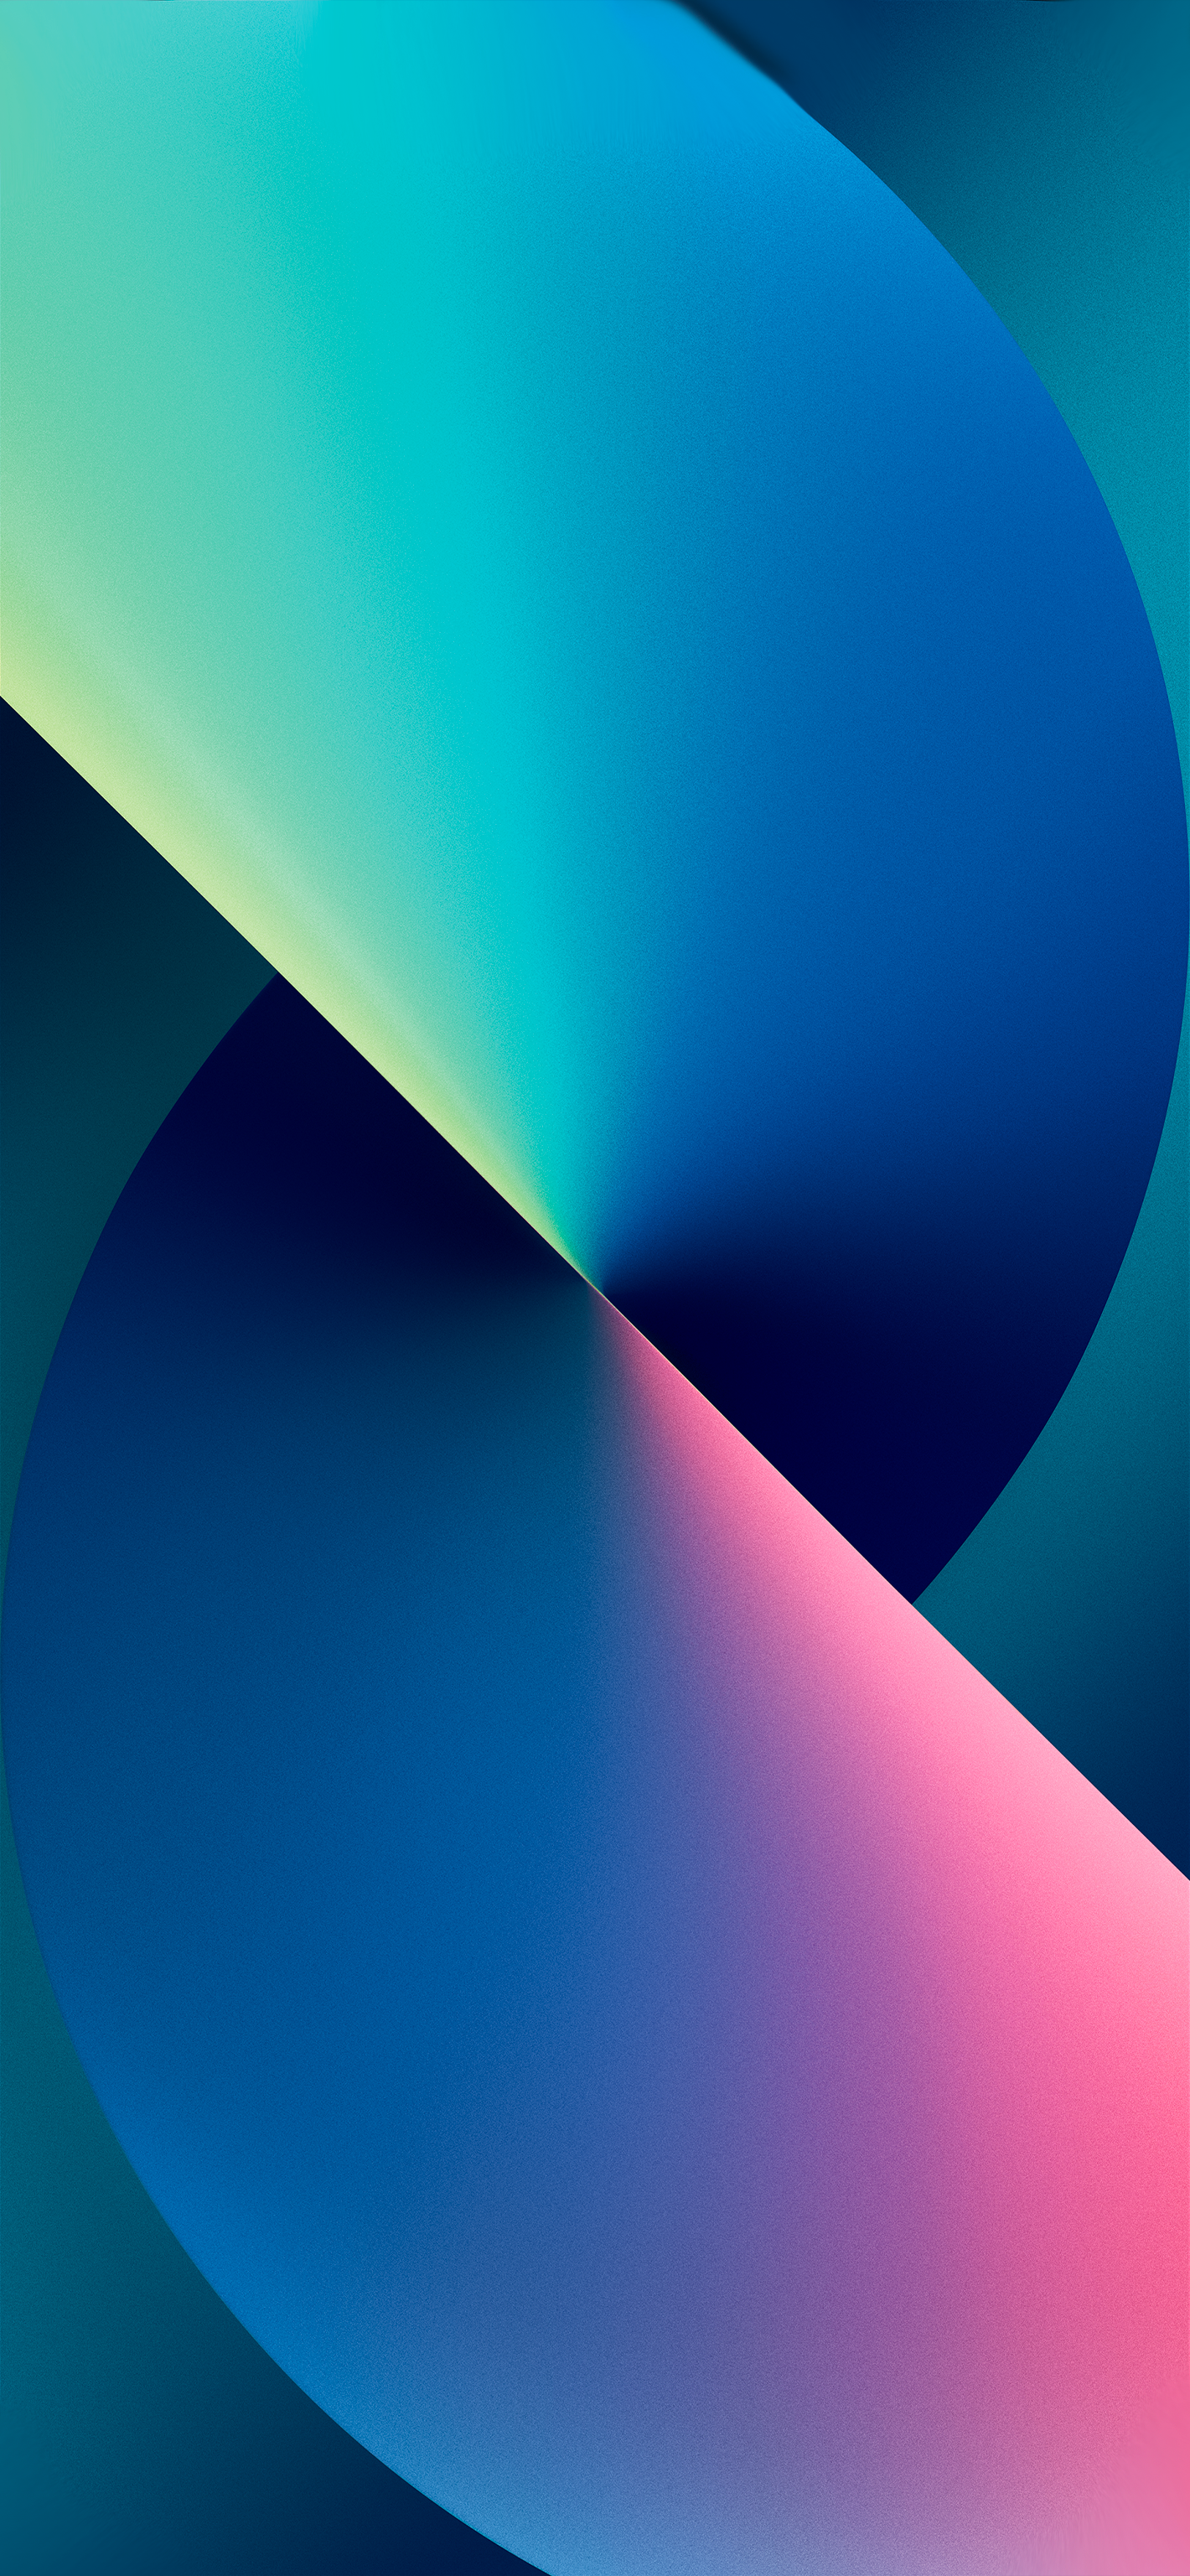 Download the iPhone 21 and iPhone 21 Pro wallpapers